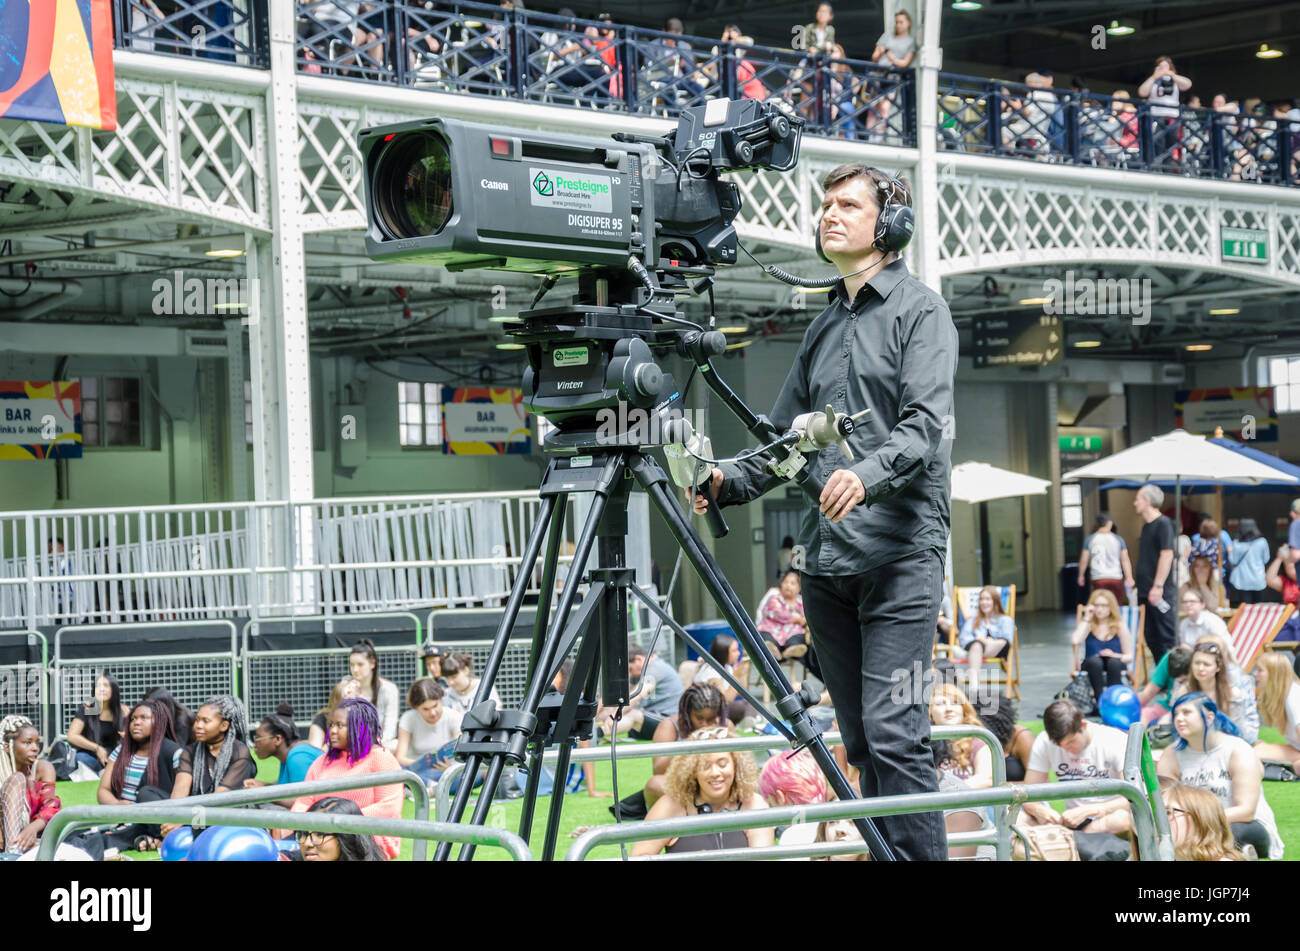 A camera man filming the activities on the stage at the London Korean Festival in London Olympia. - Stock Image